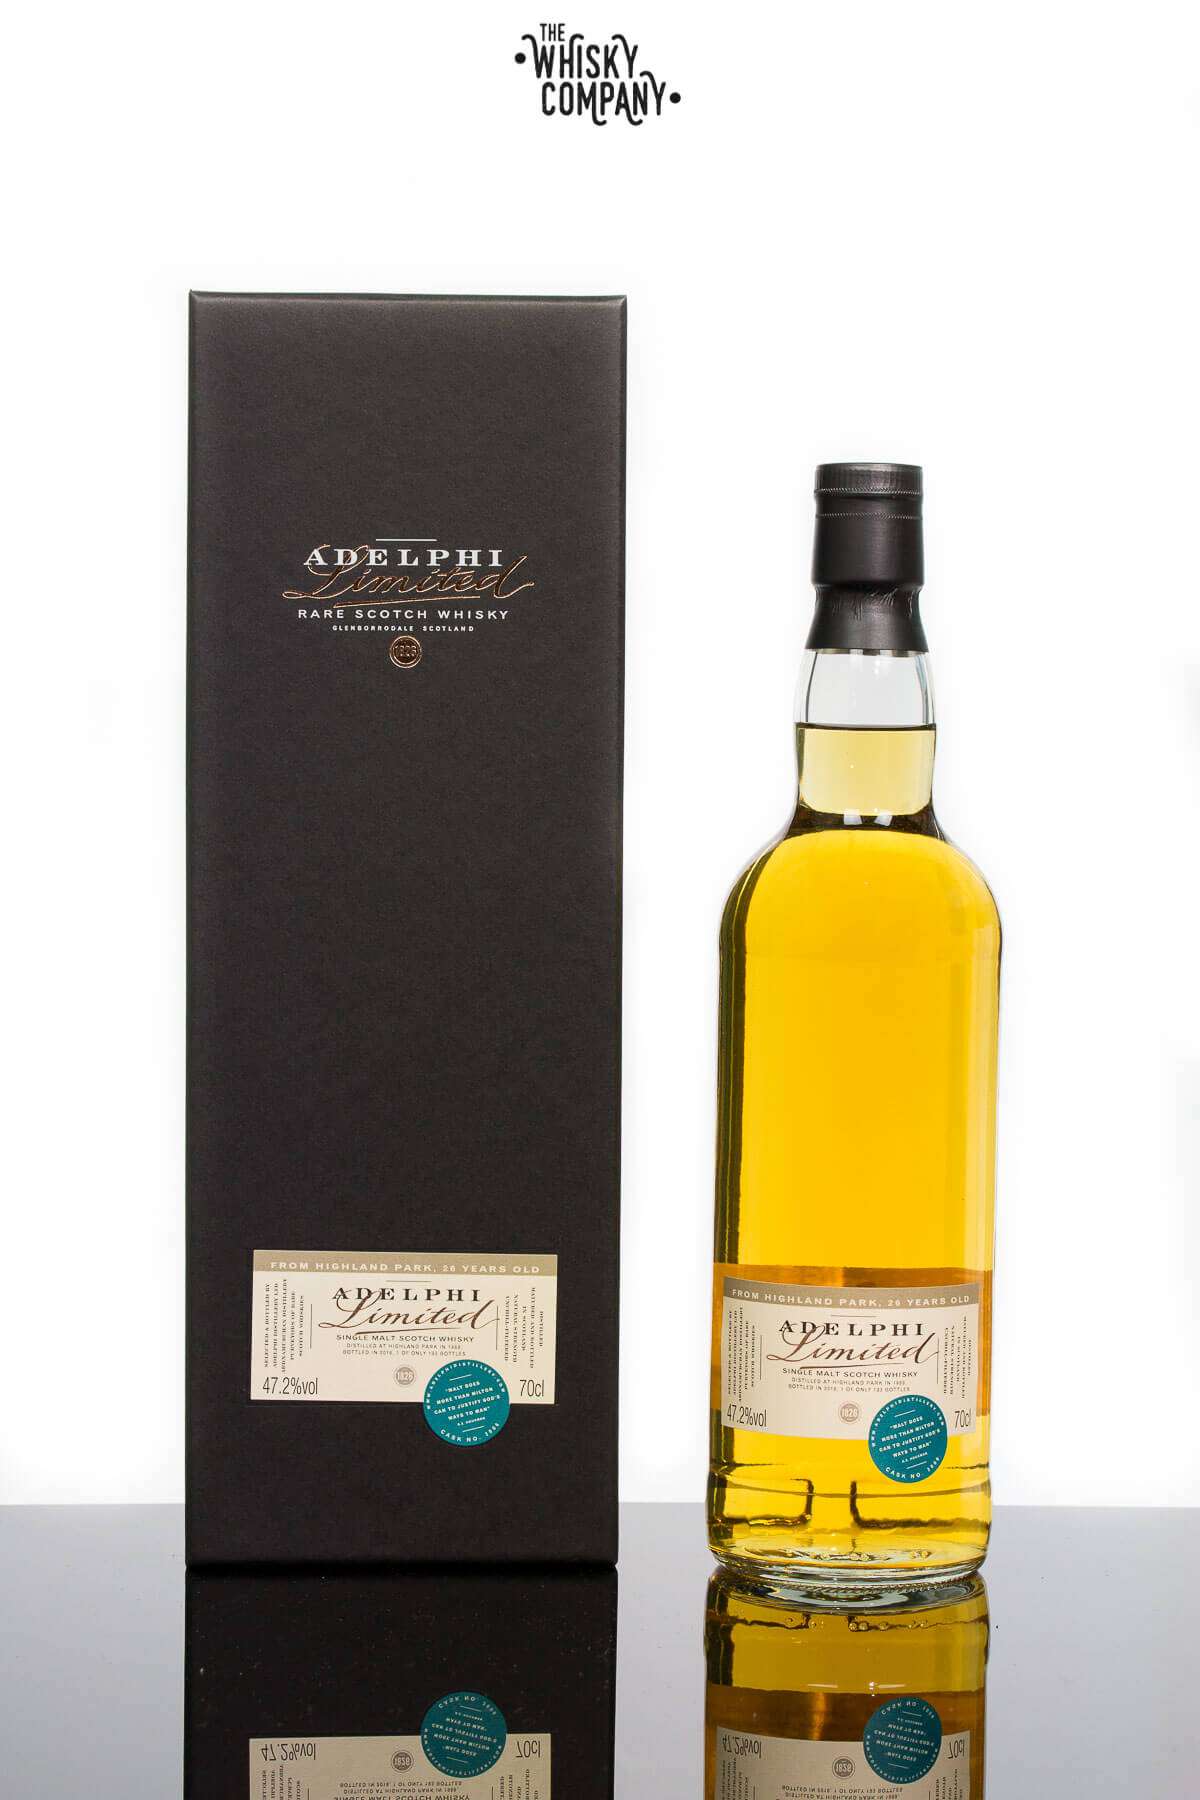 Adelphi 1989 Highland Park 26 Years Old Island Single Malt Scotch Whisky (700ml)